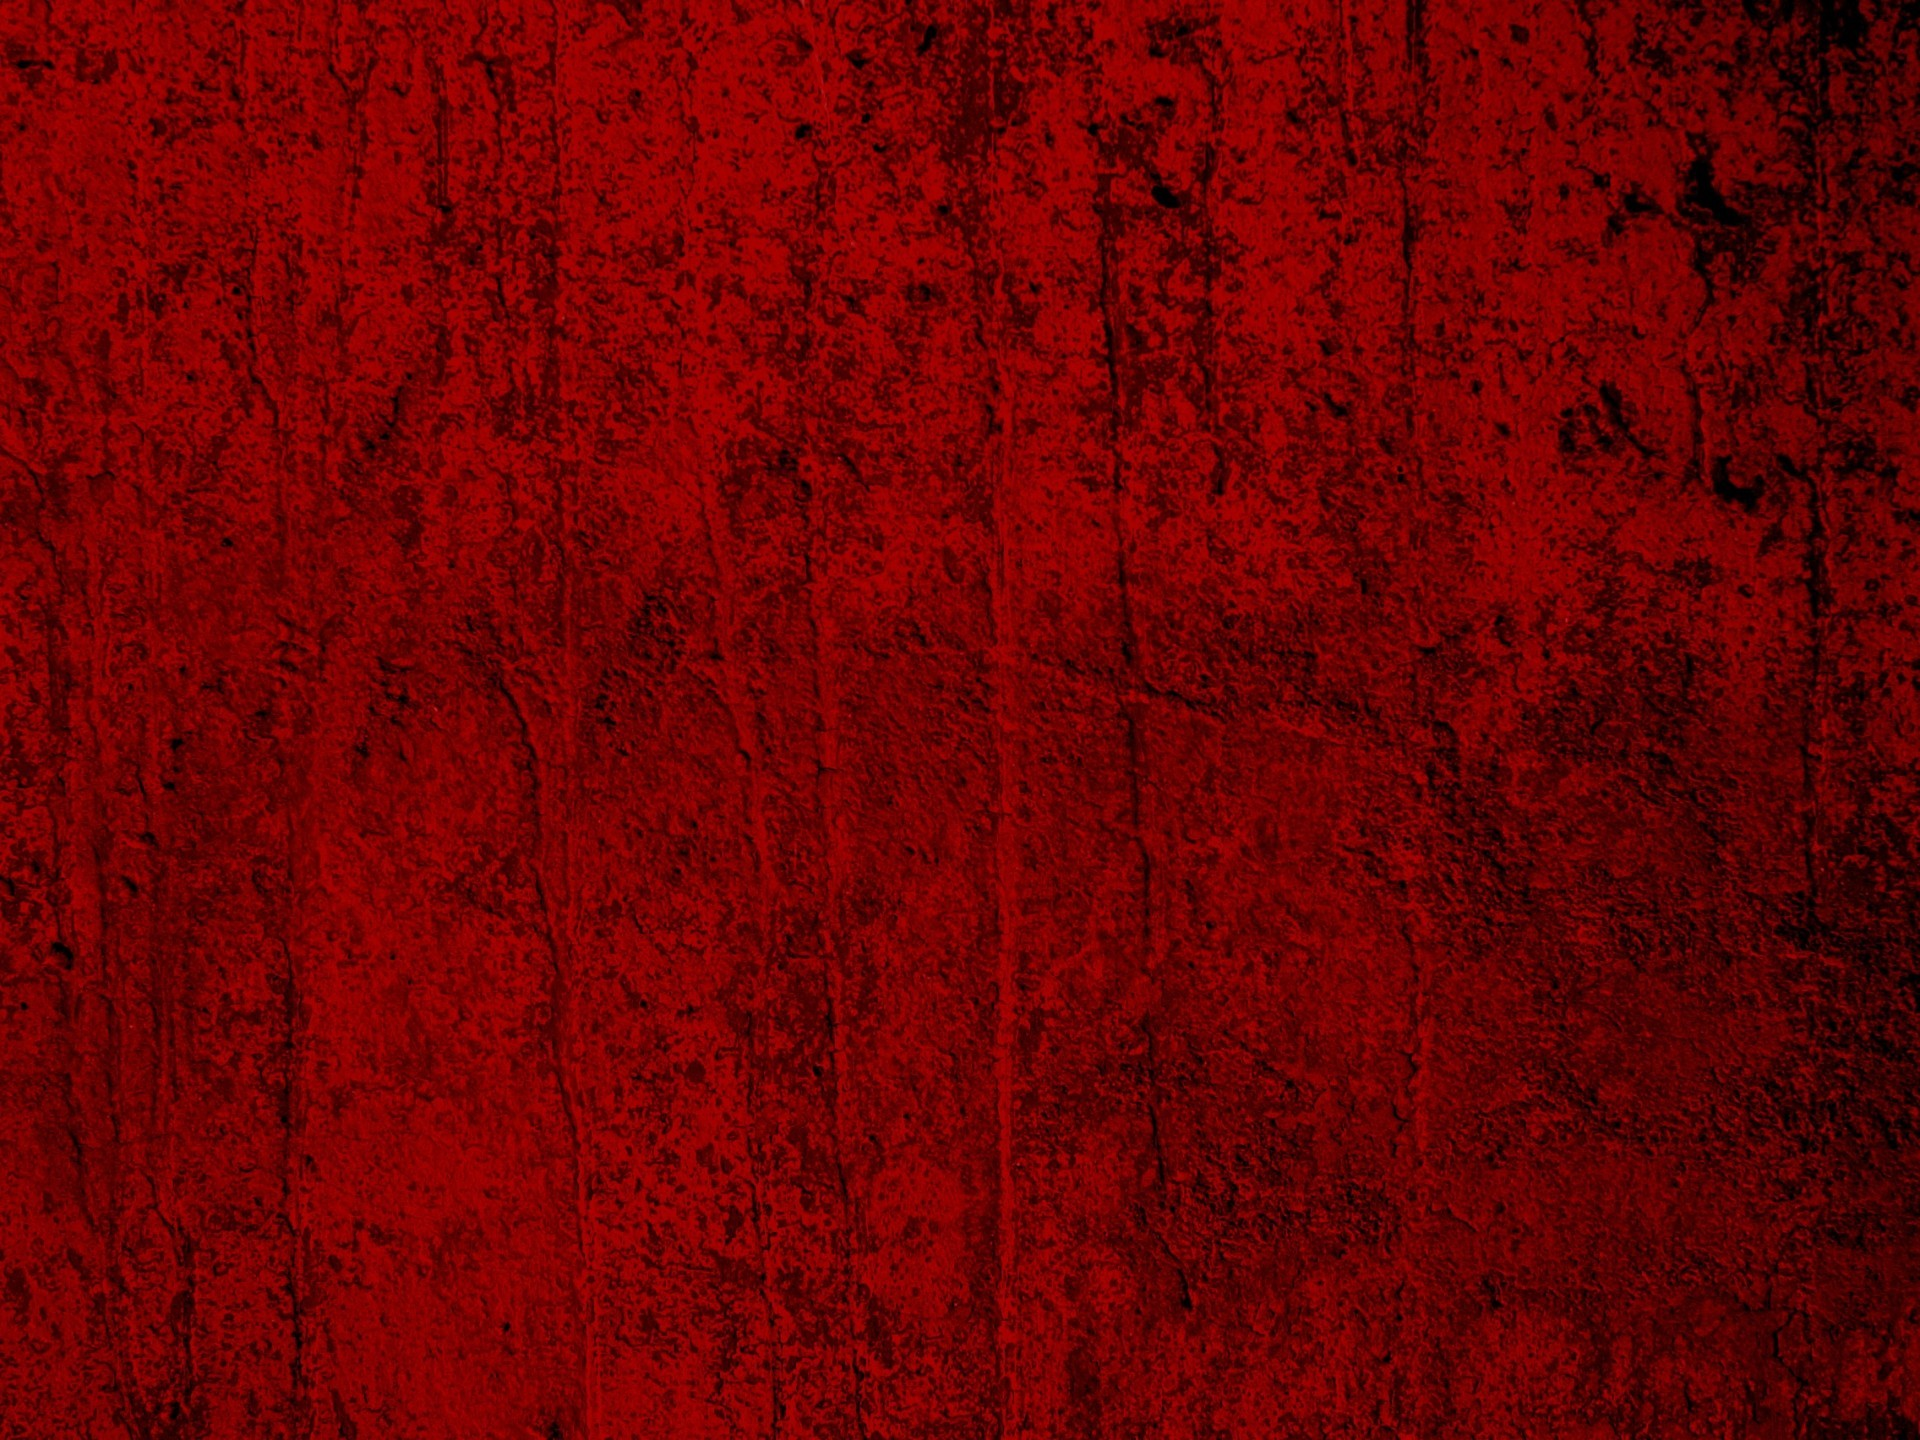 Res: 1920x1440, Red Textured Background